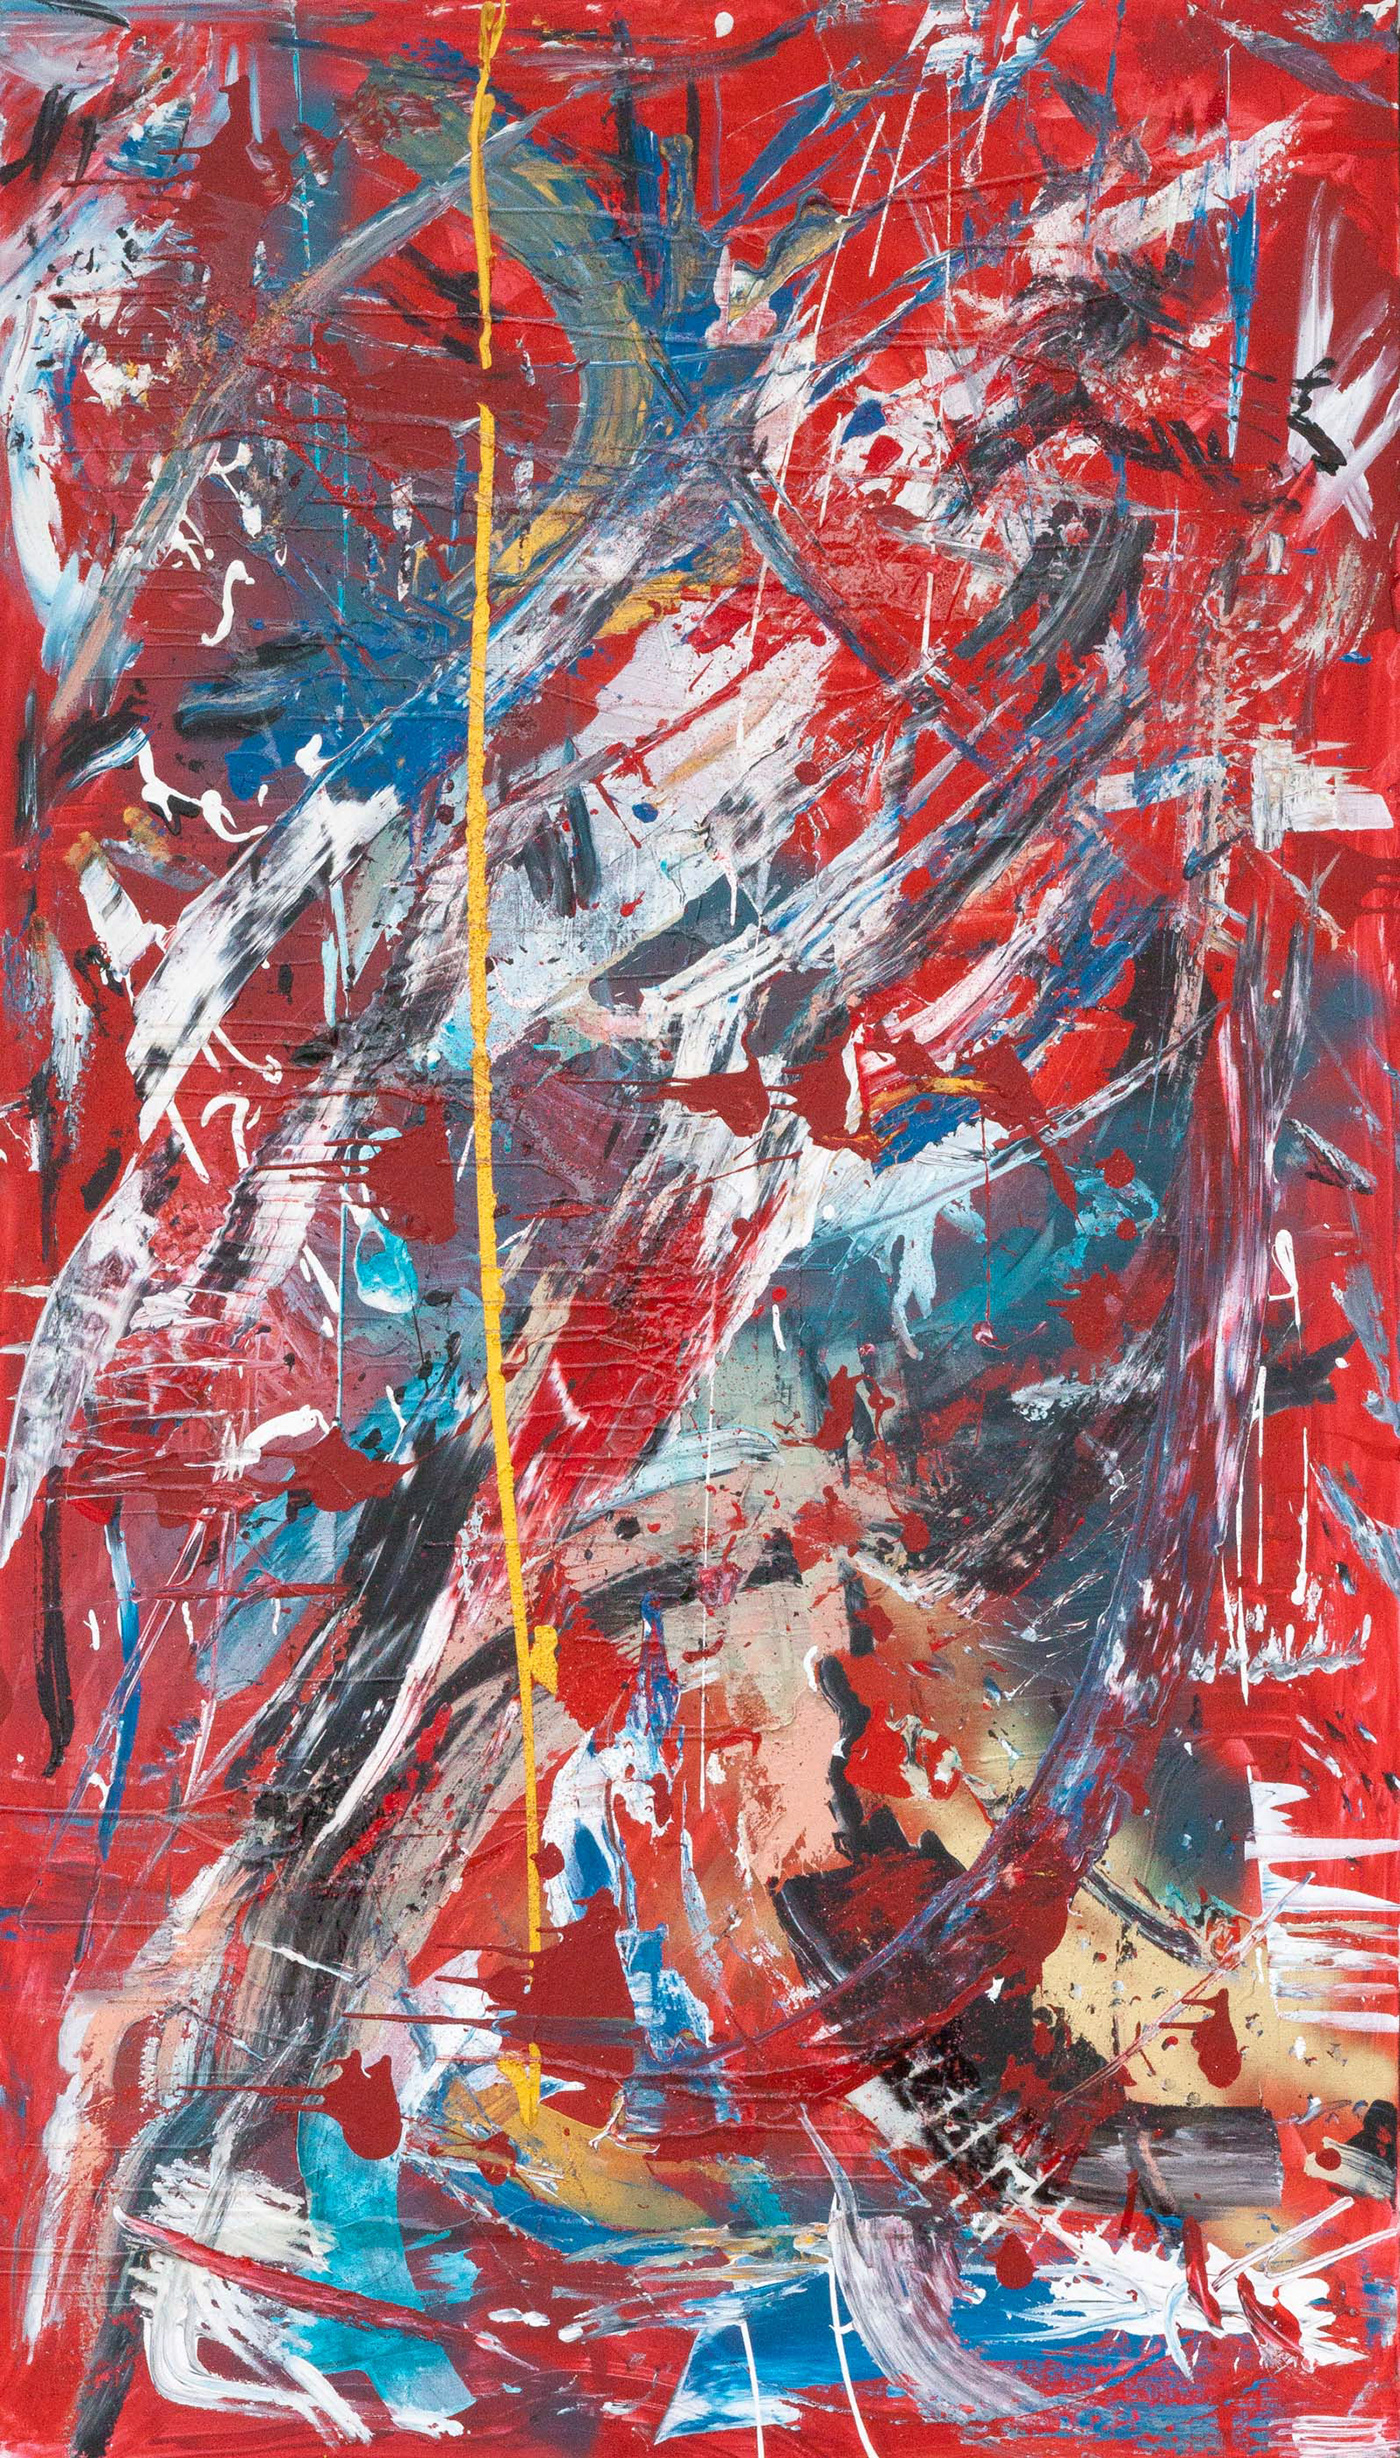 Objects of Art - Abstract Neo Expressionism. on Behance